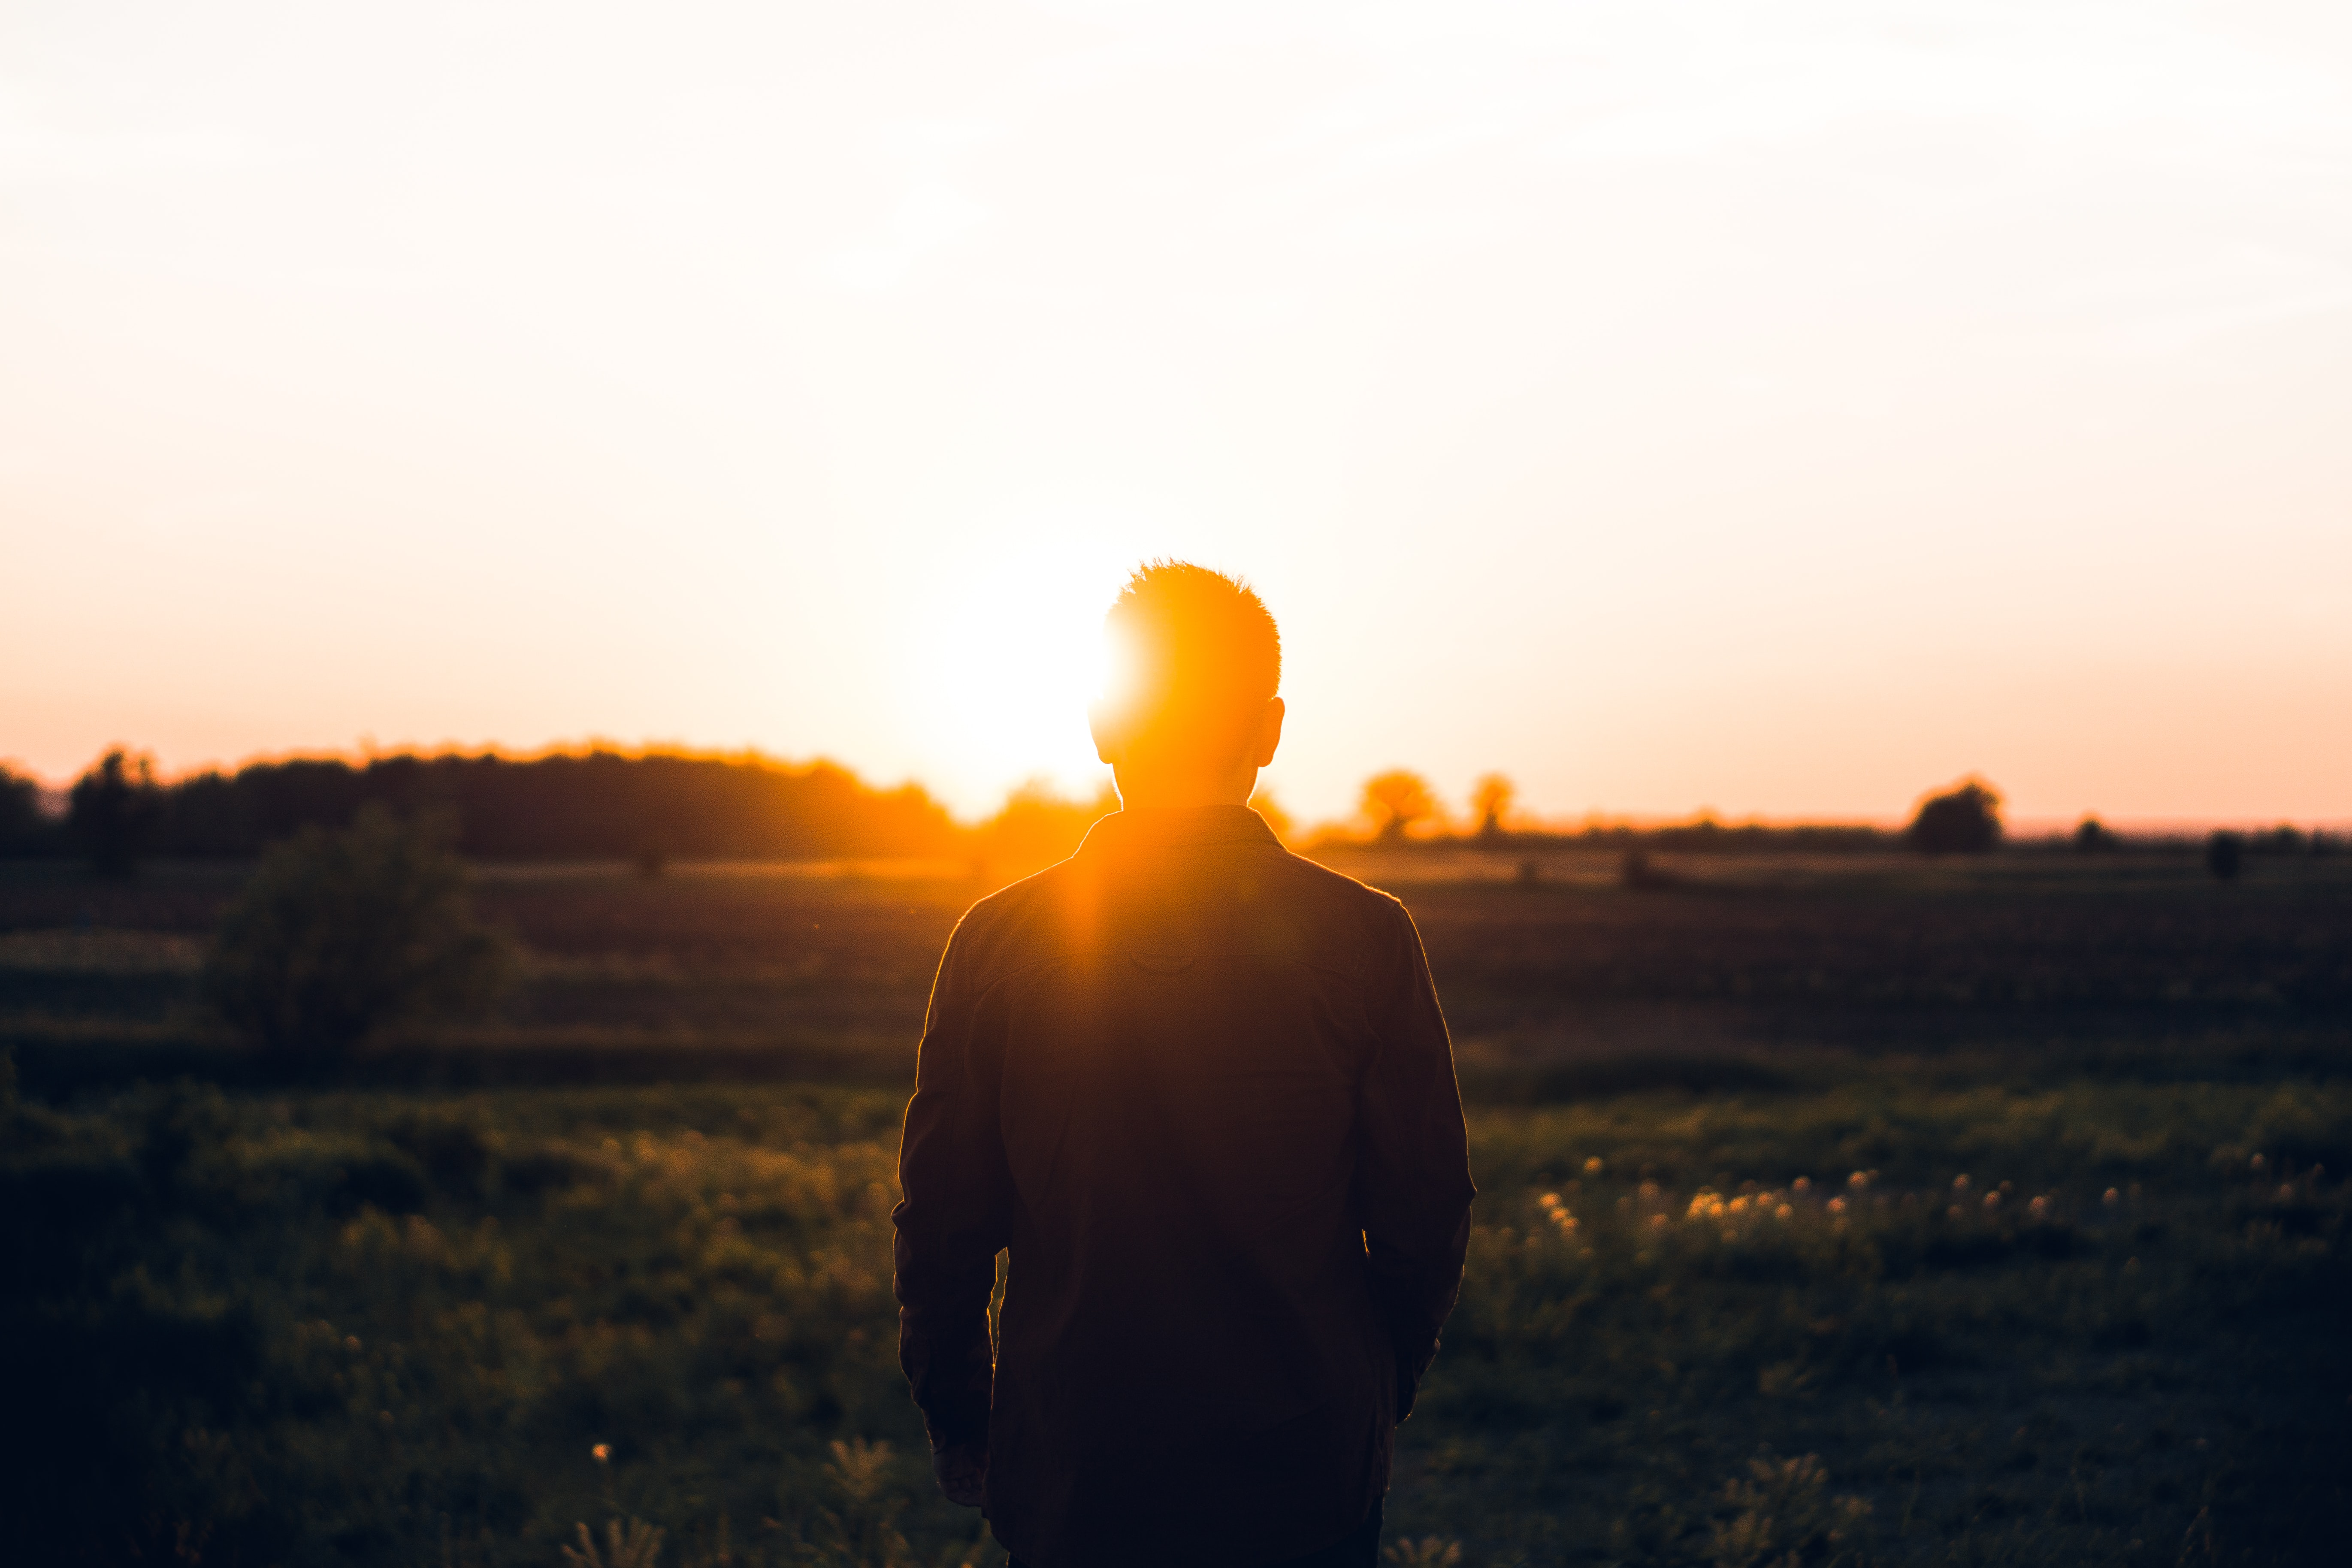 Back of a man's head and body, with the sun flaring right above his left ear, in a field at sunset